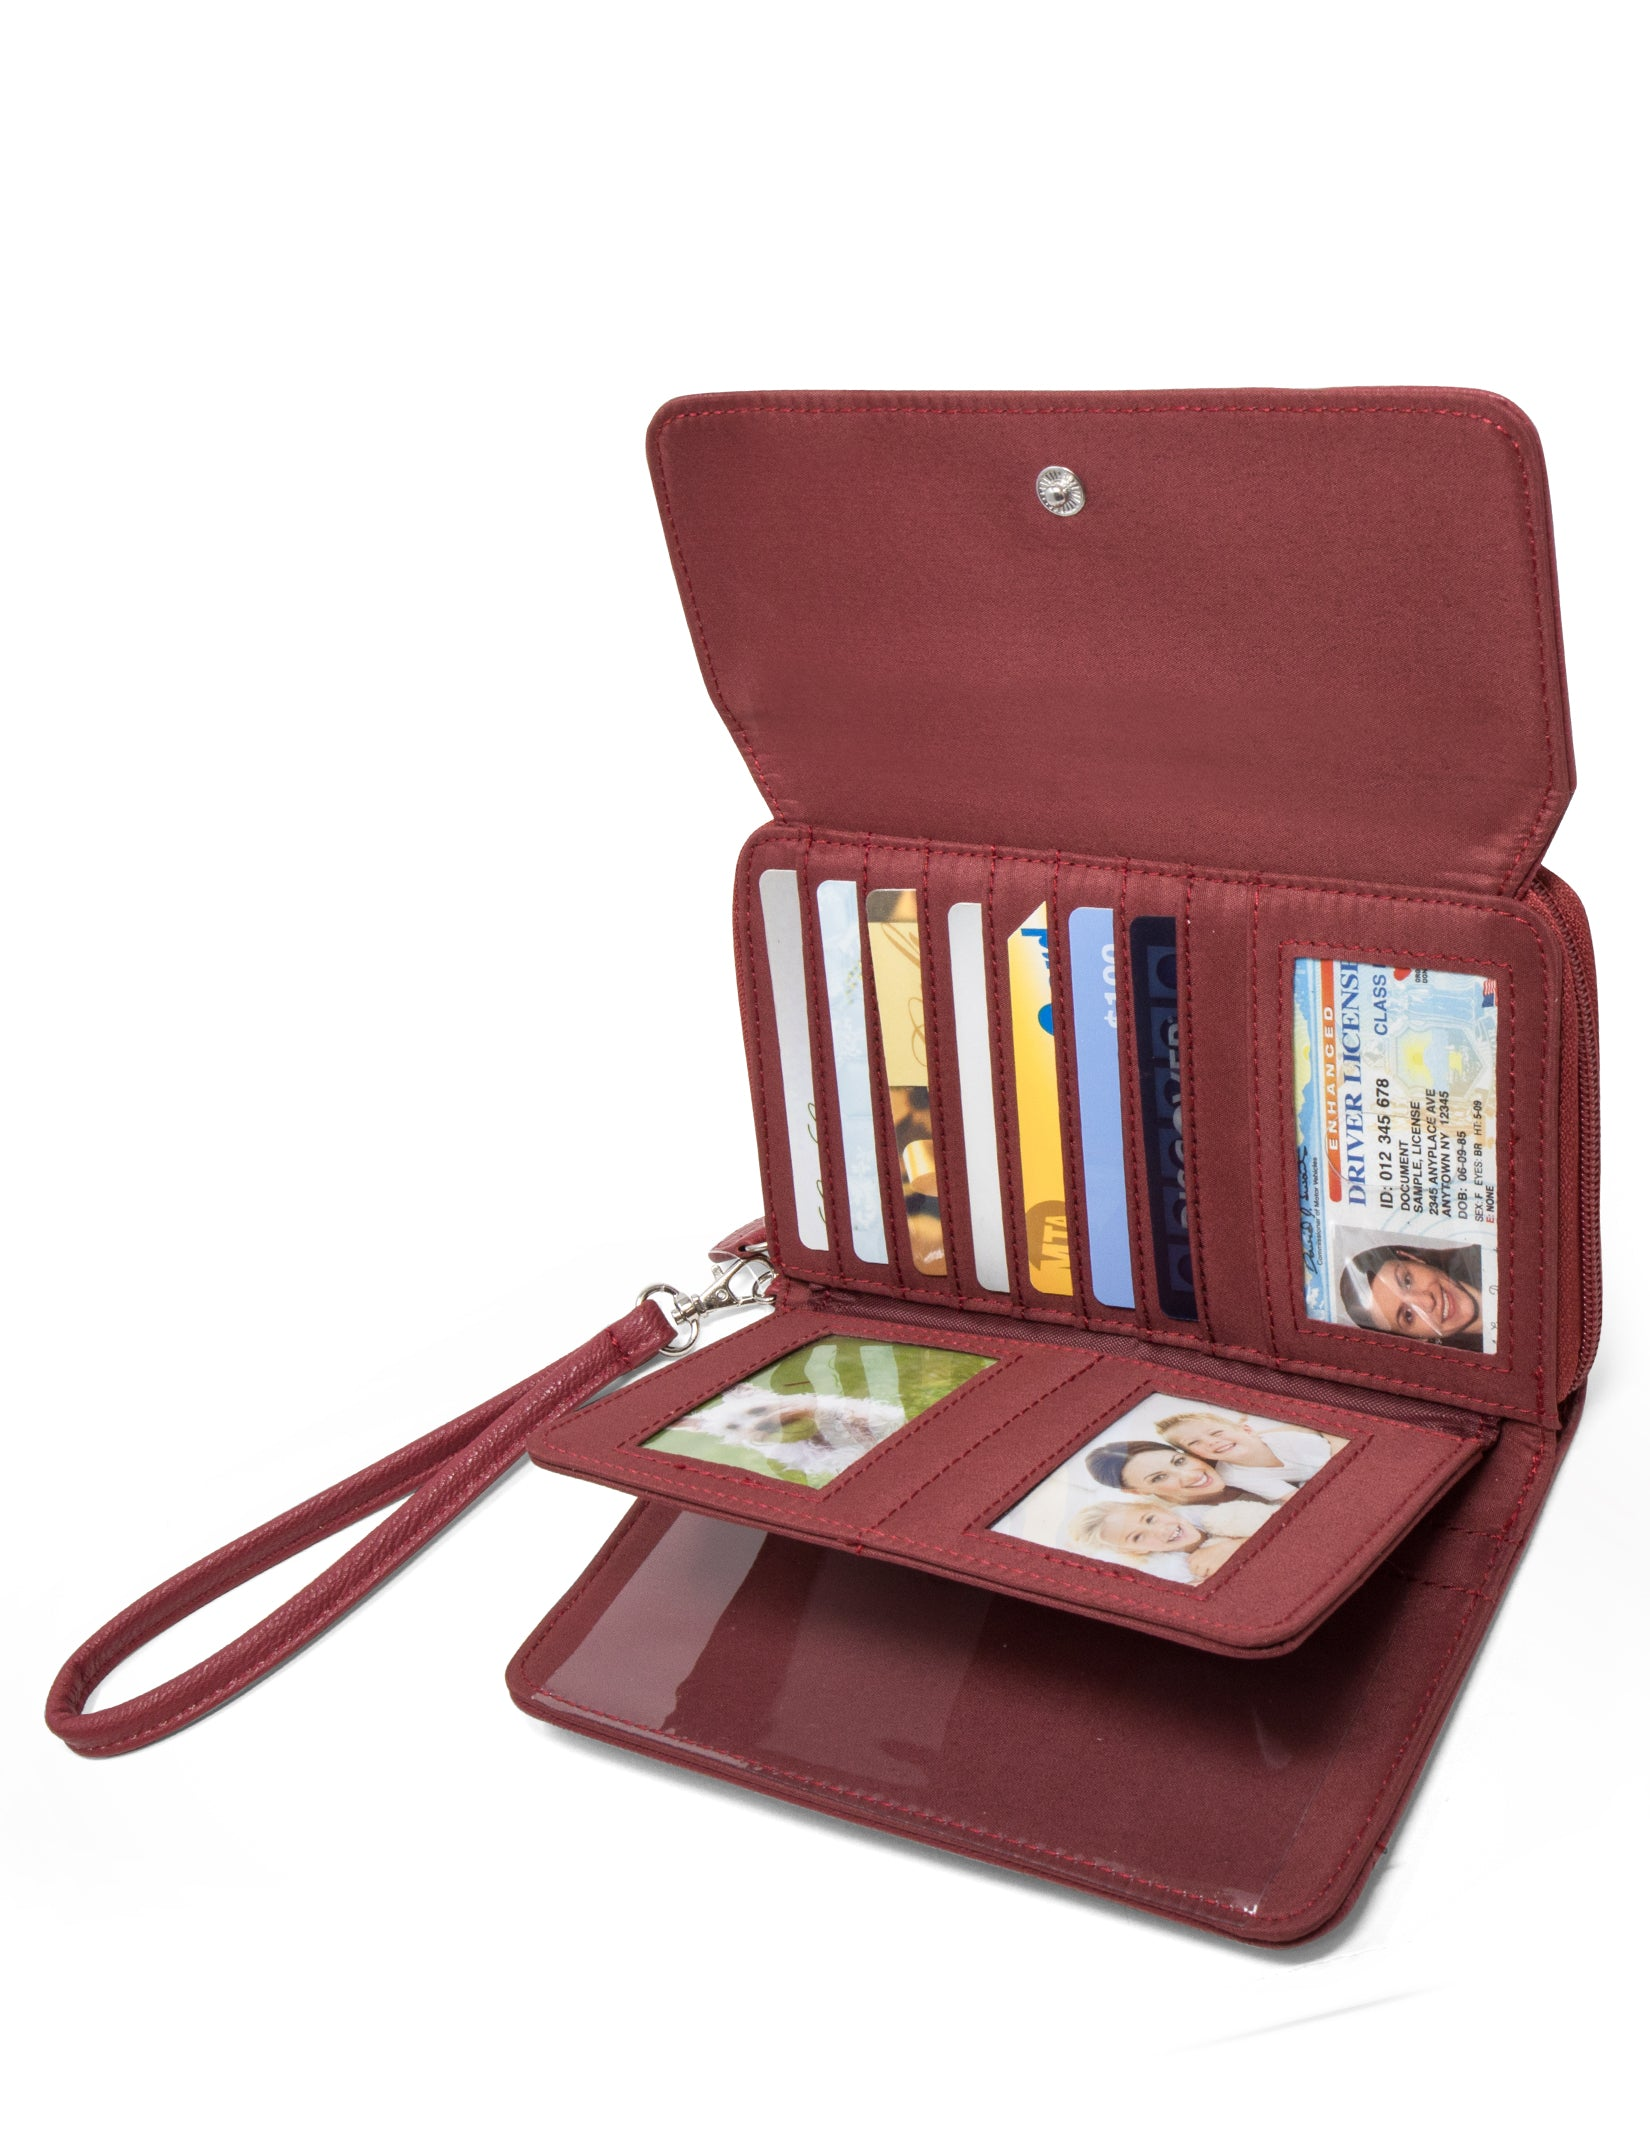 My Big Fat Wallet - Mundi Wallets - Women's Wallet - Organizer Wallet - RFID Protected - Red - Wristlet